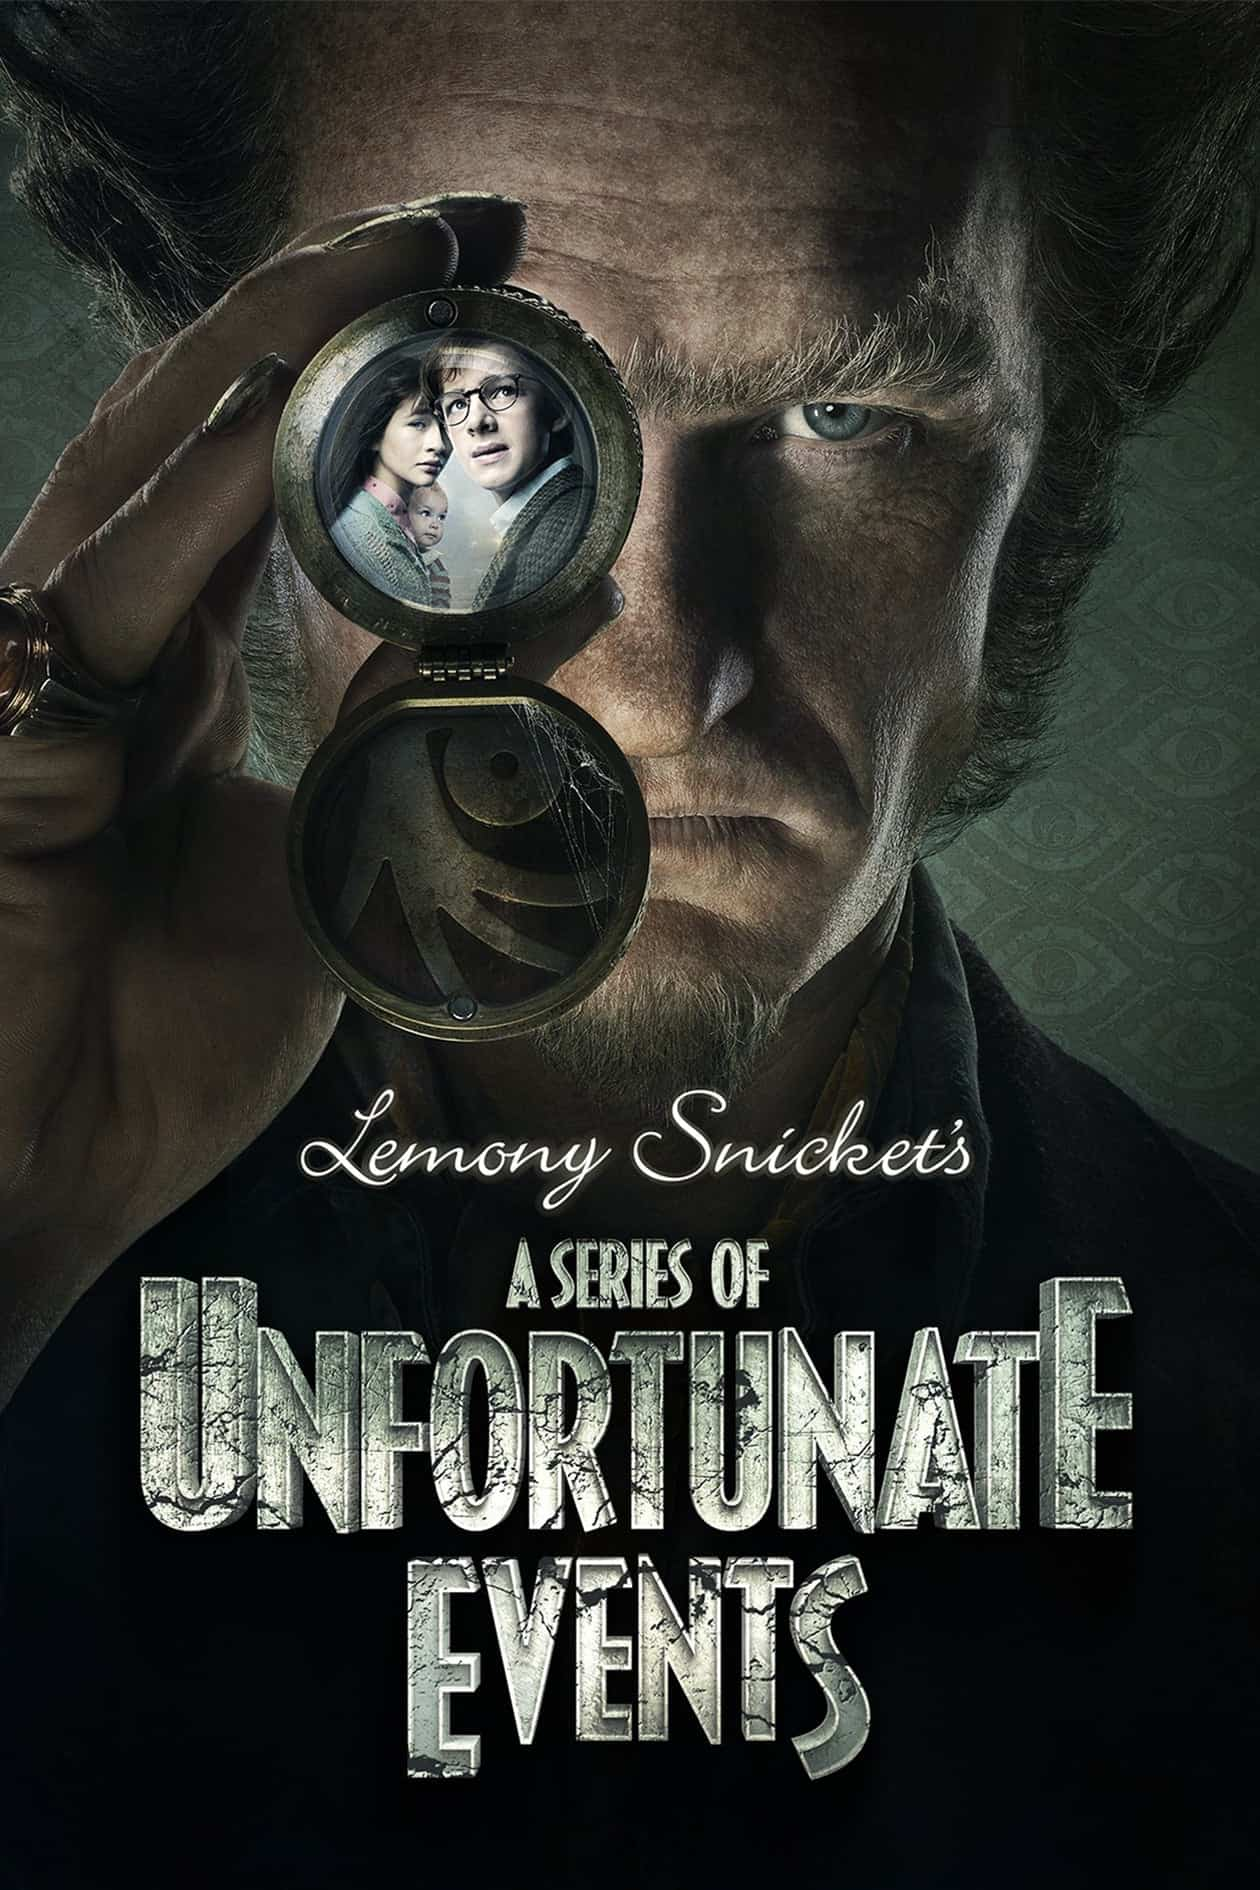 Lemony Snicket's A Series of Unfortunate Events, 2004